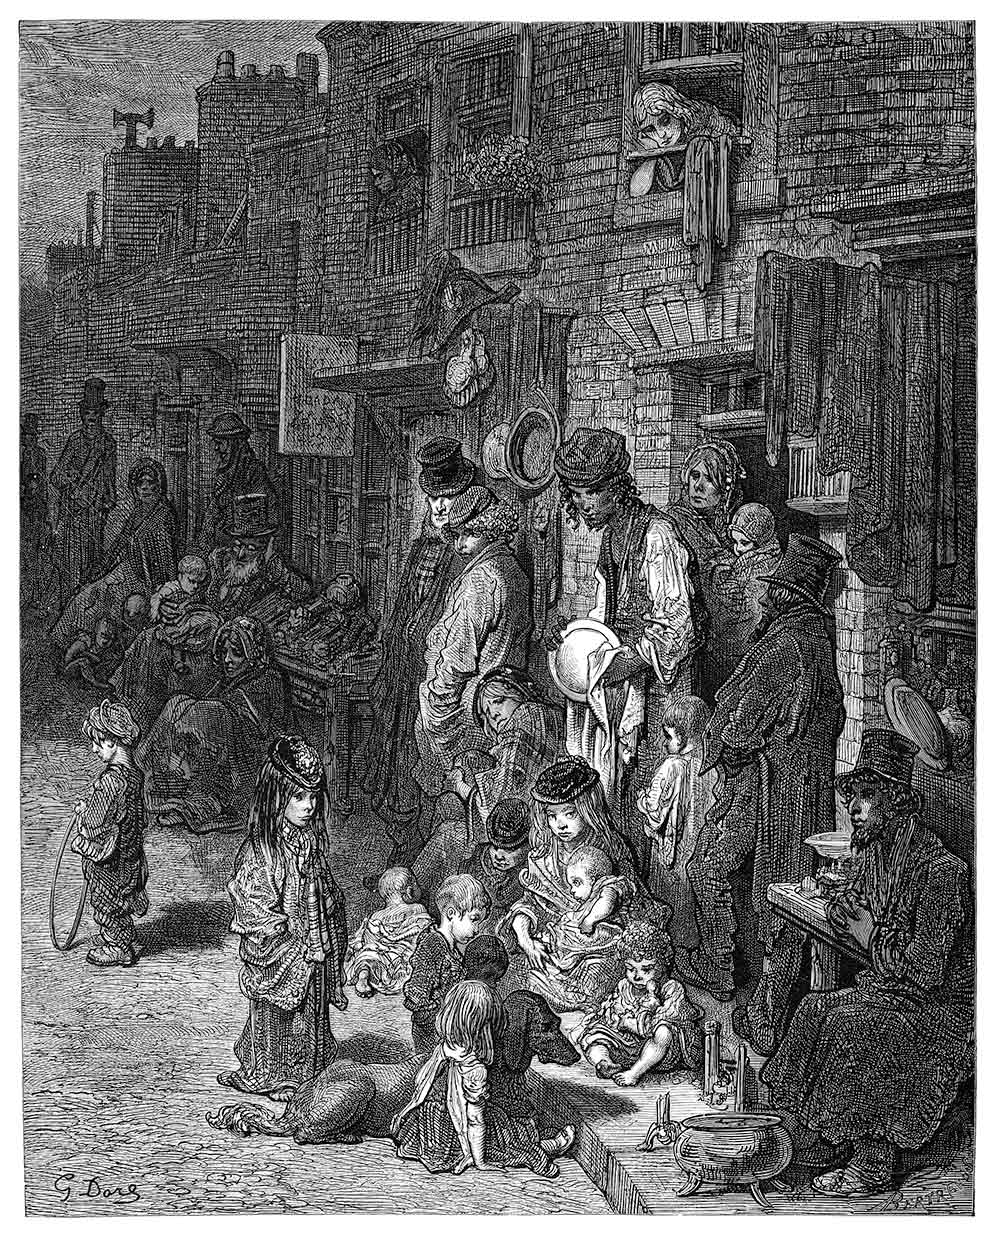 View of Wentworth street and its inhabitants, black and white engraving